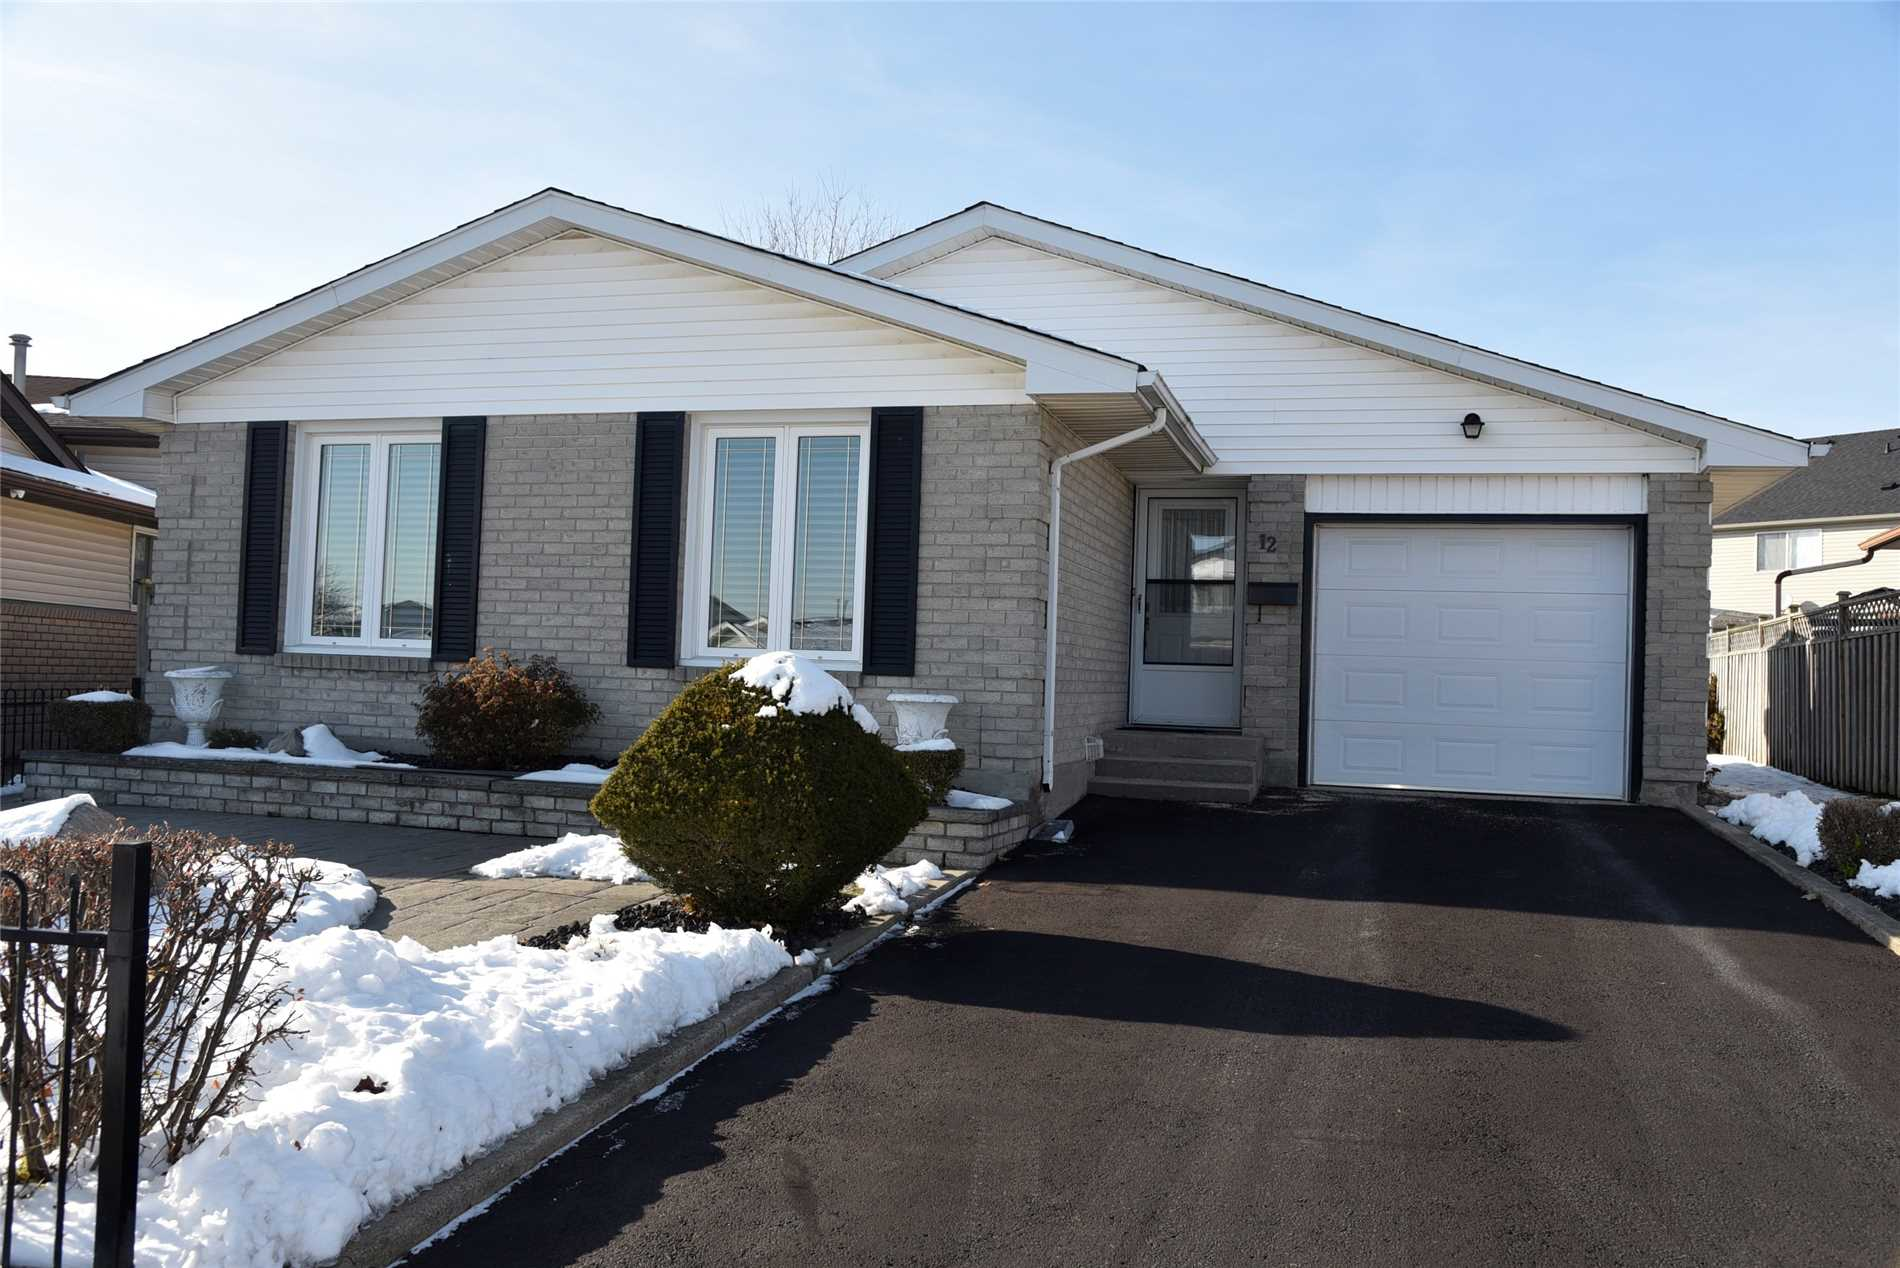 House for sale at 12 Macatee Place Cambridge Ontario - MLS: X4311269